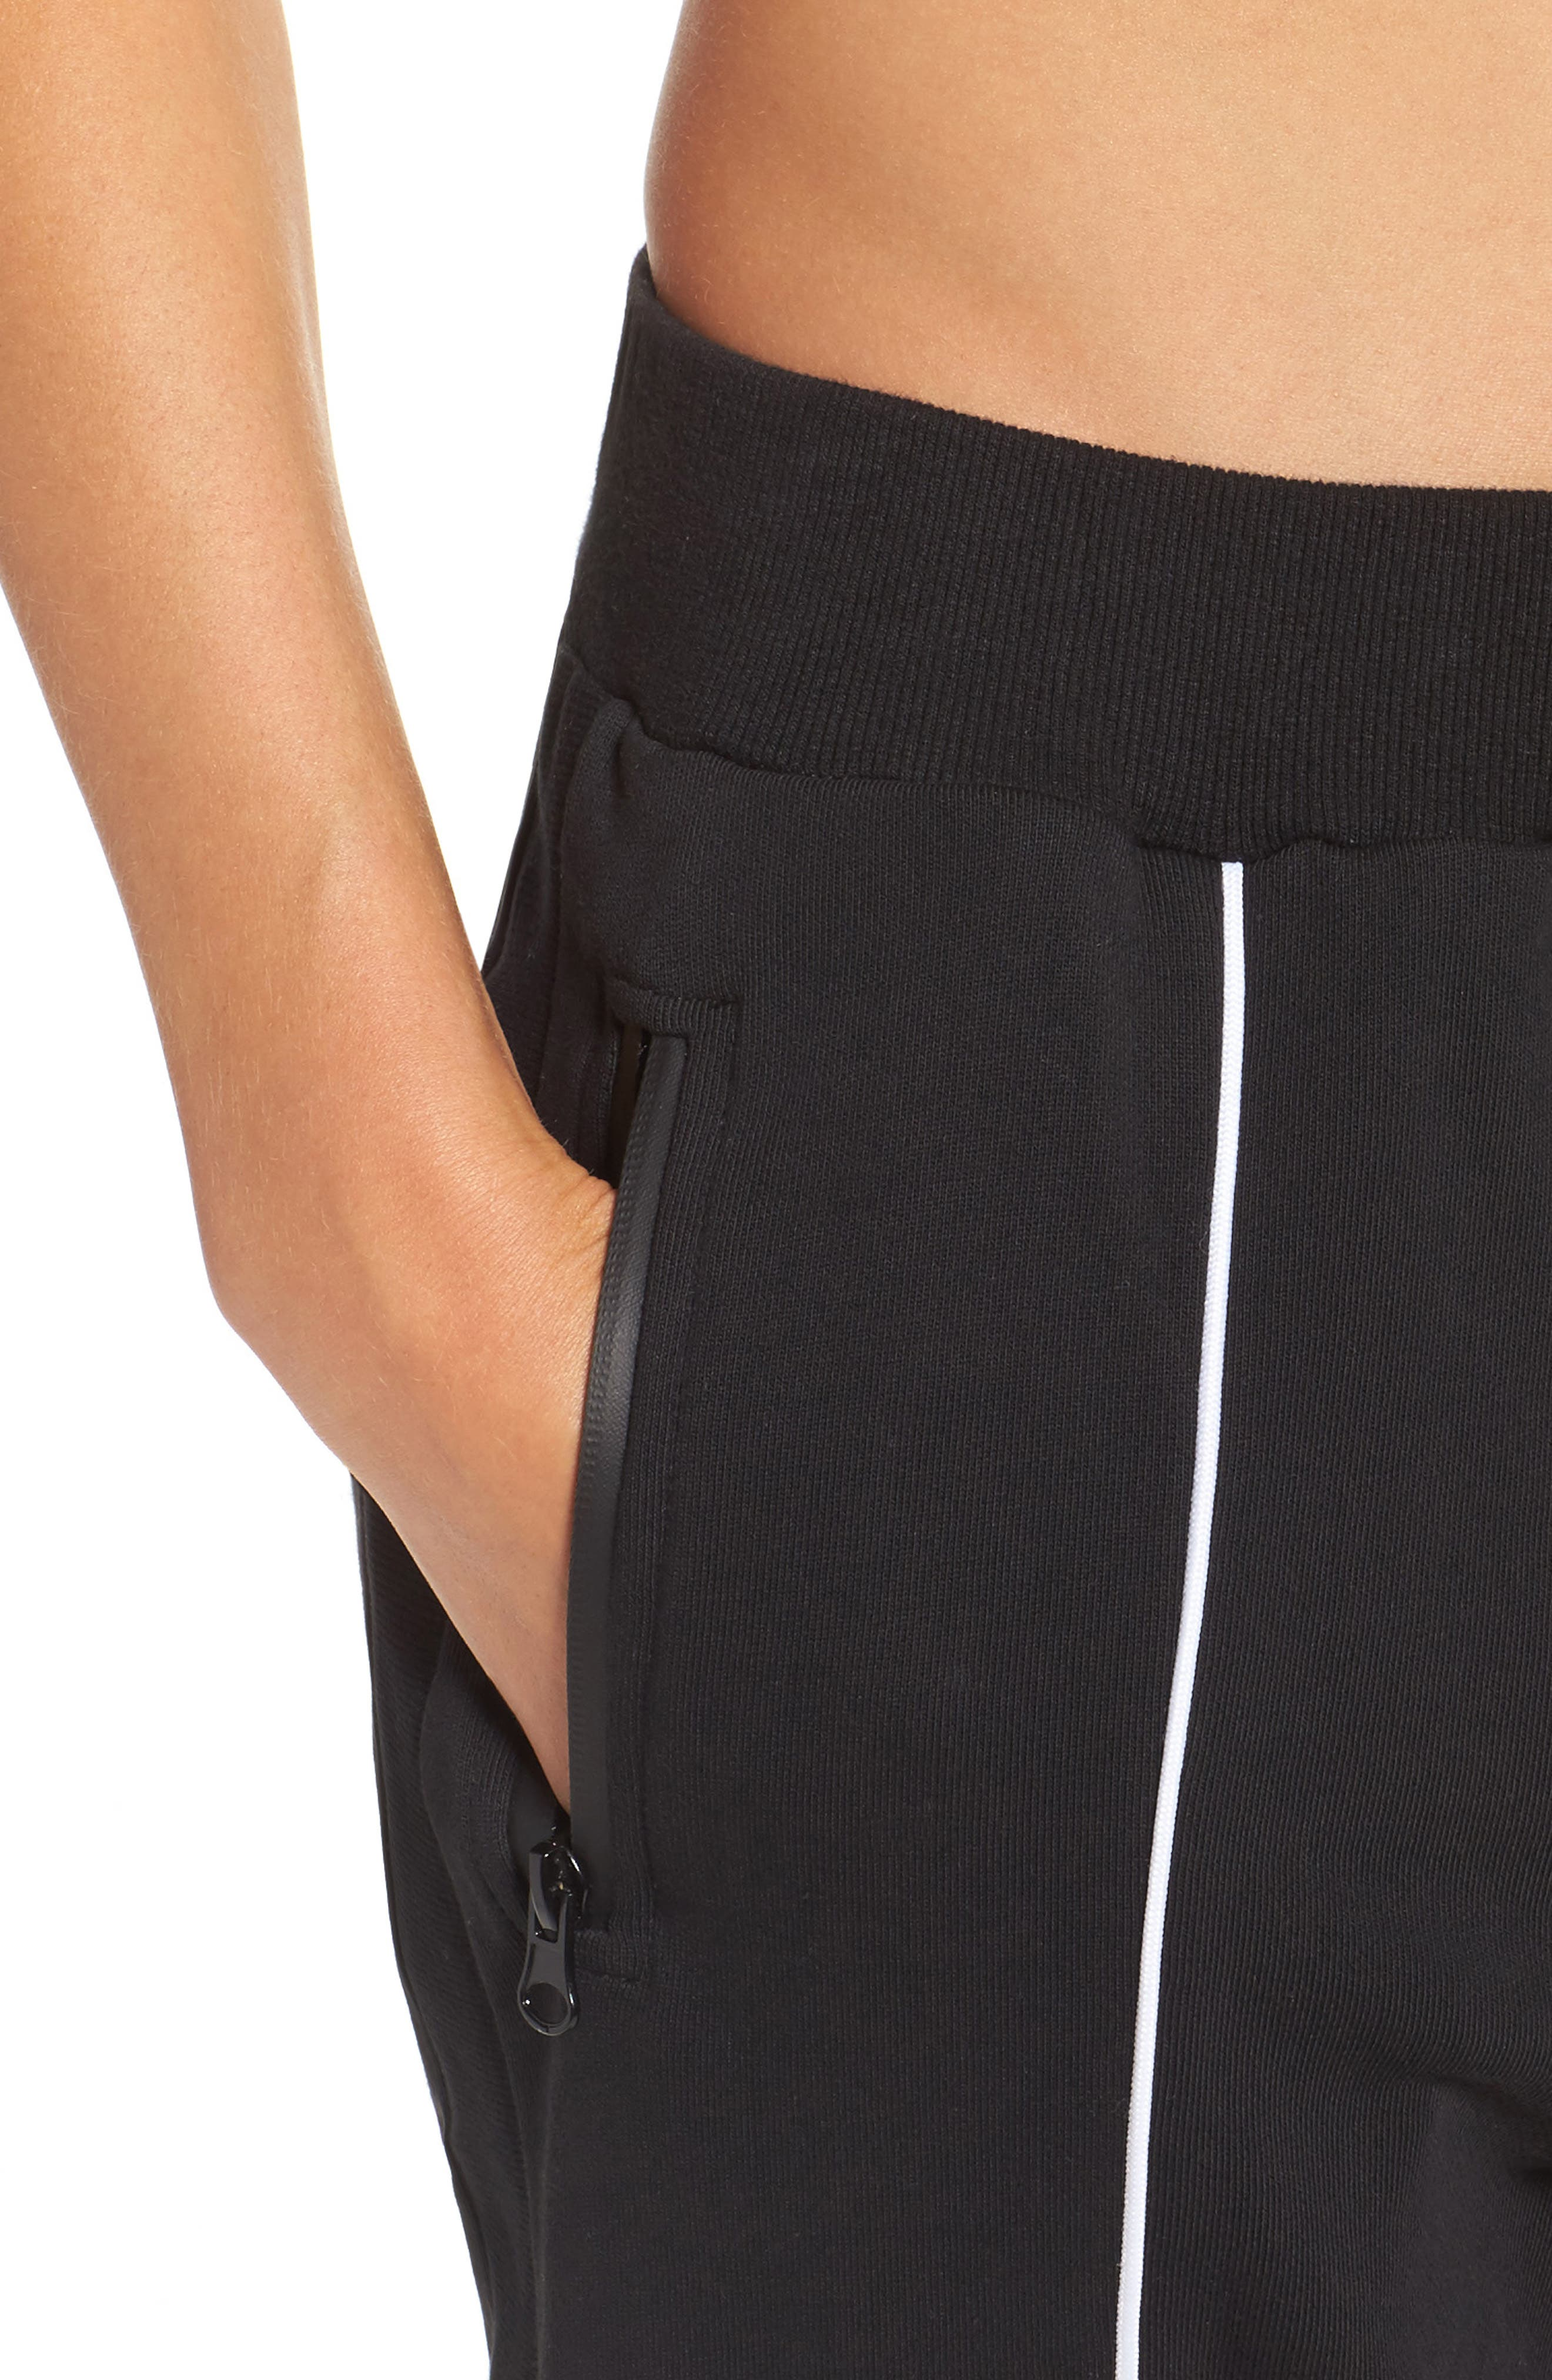 Deuce Track Pants,                             Alternate thumbnail 4, color,                             Black